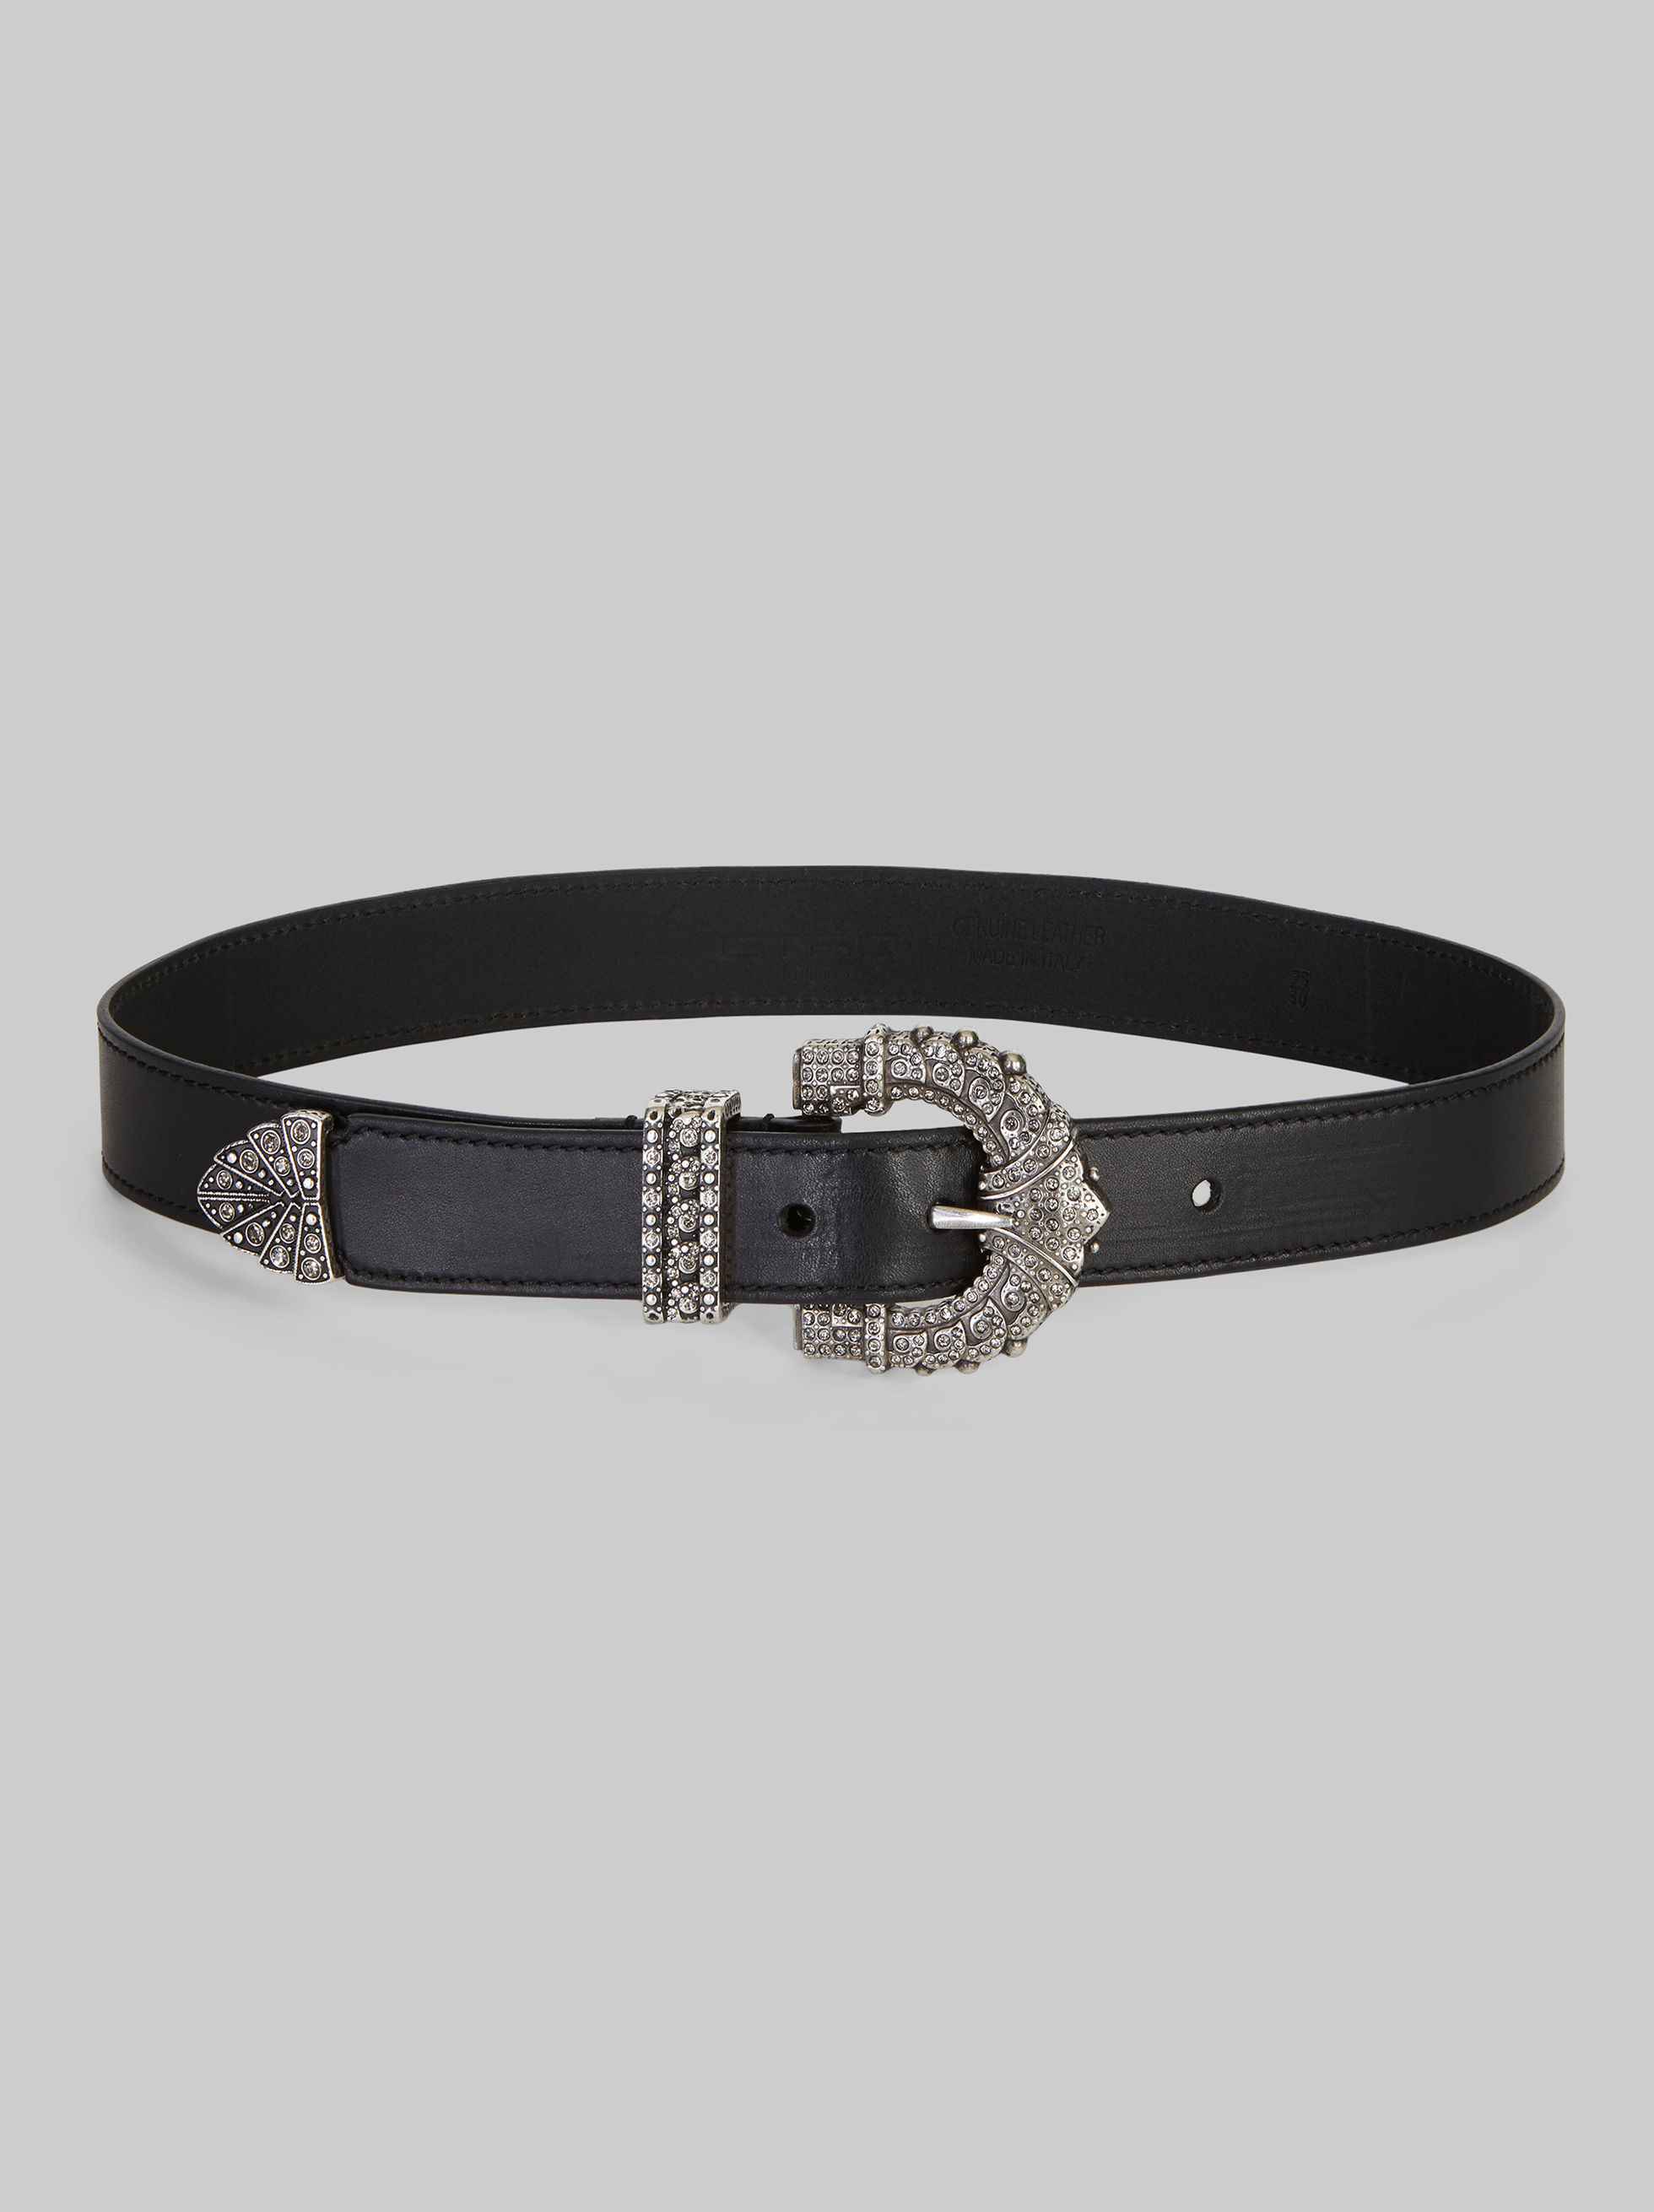 BELT WITH JEWELED BUCKLE